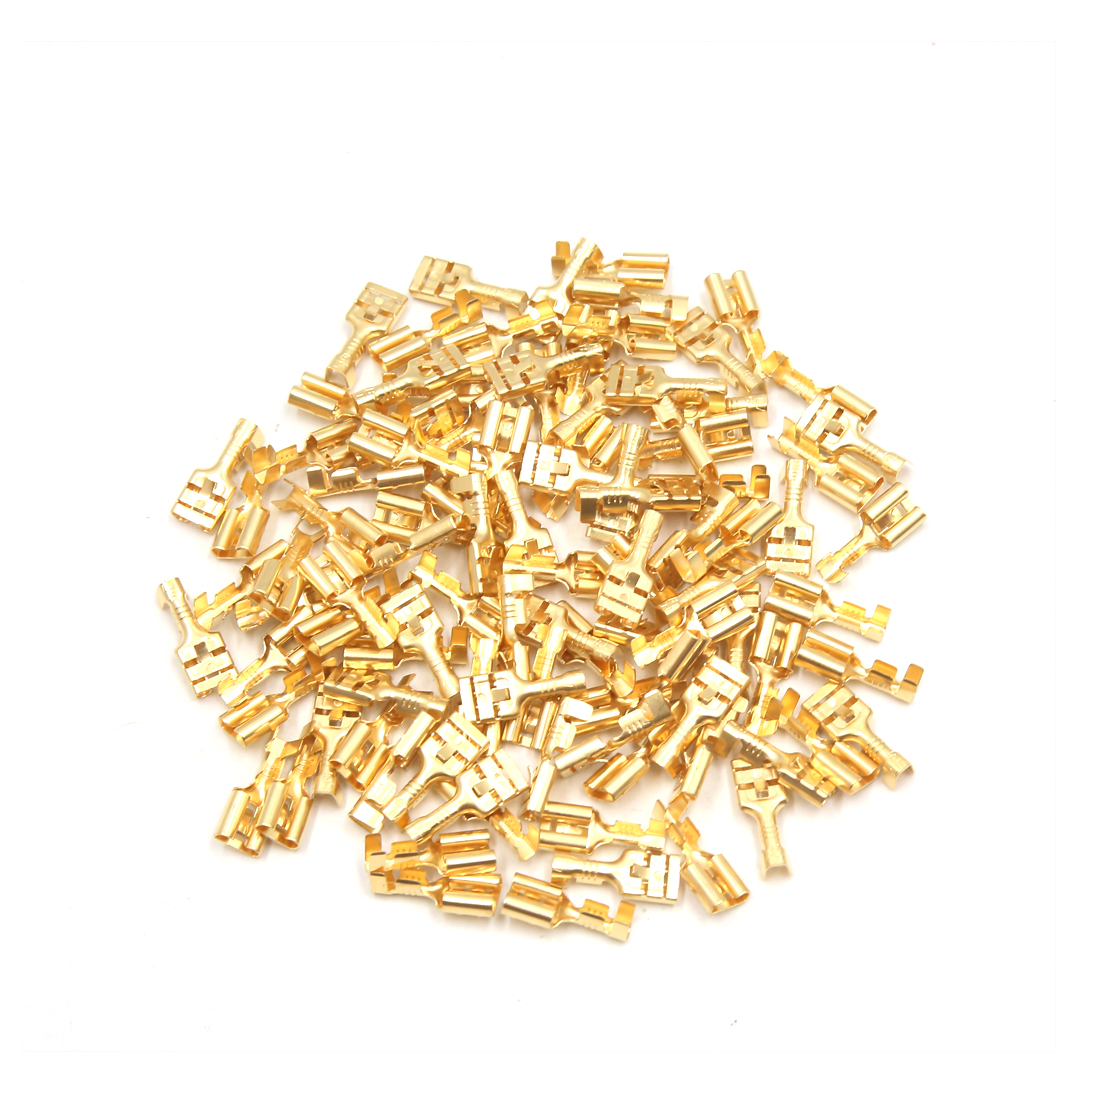 100Pcs Gold Tone Electric Horn Female Spade Connector Terminal for Car Home